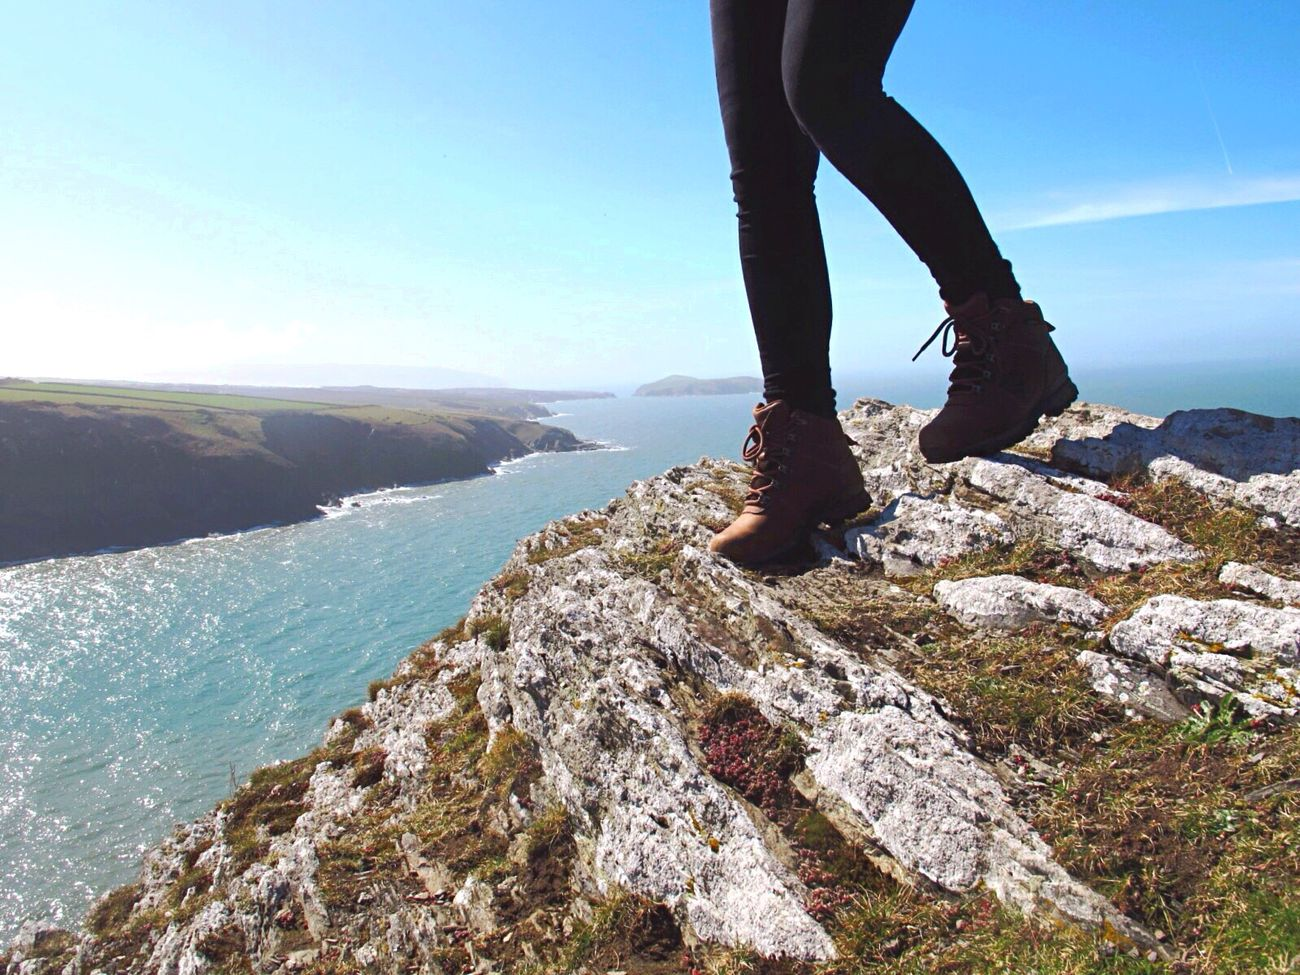 In my element walking in the great outdoors (looking down on Mwnt Beach in Wales) Two Is Better Than One Photography Nature Outdoors Scenics Nature Beach Photographer Beachphotography Overhead View Wildlife & Nature Walking Around Hiking Adventure Lifestyles Enjoying Life Hanging Out Exploring Beauty In Nature Personal Perspective Landscape Eye4photography  Style People And Places Popular Photos